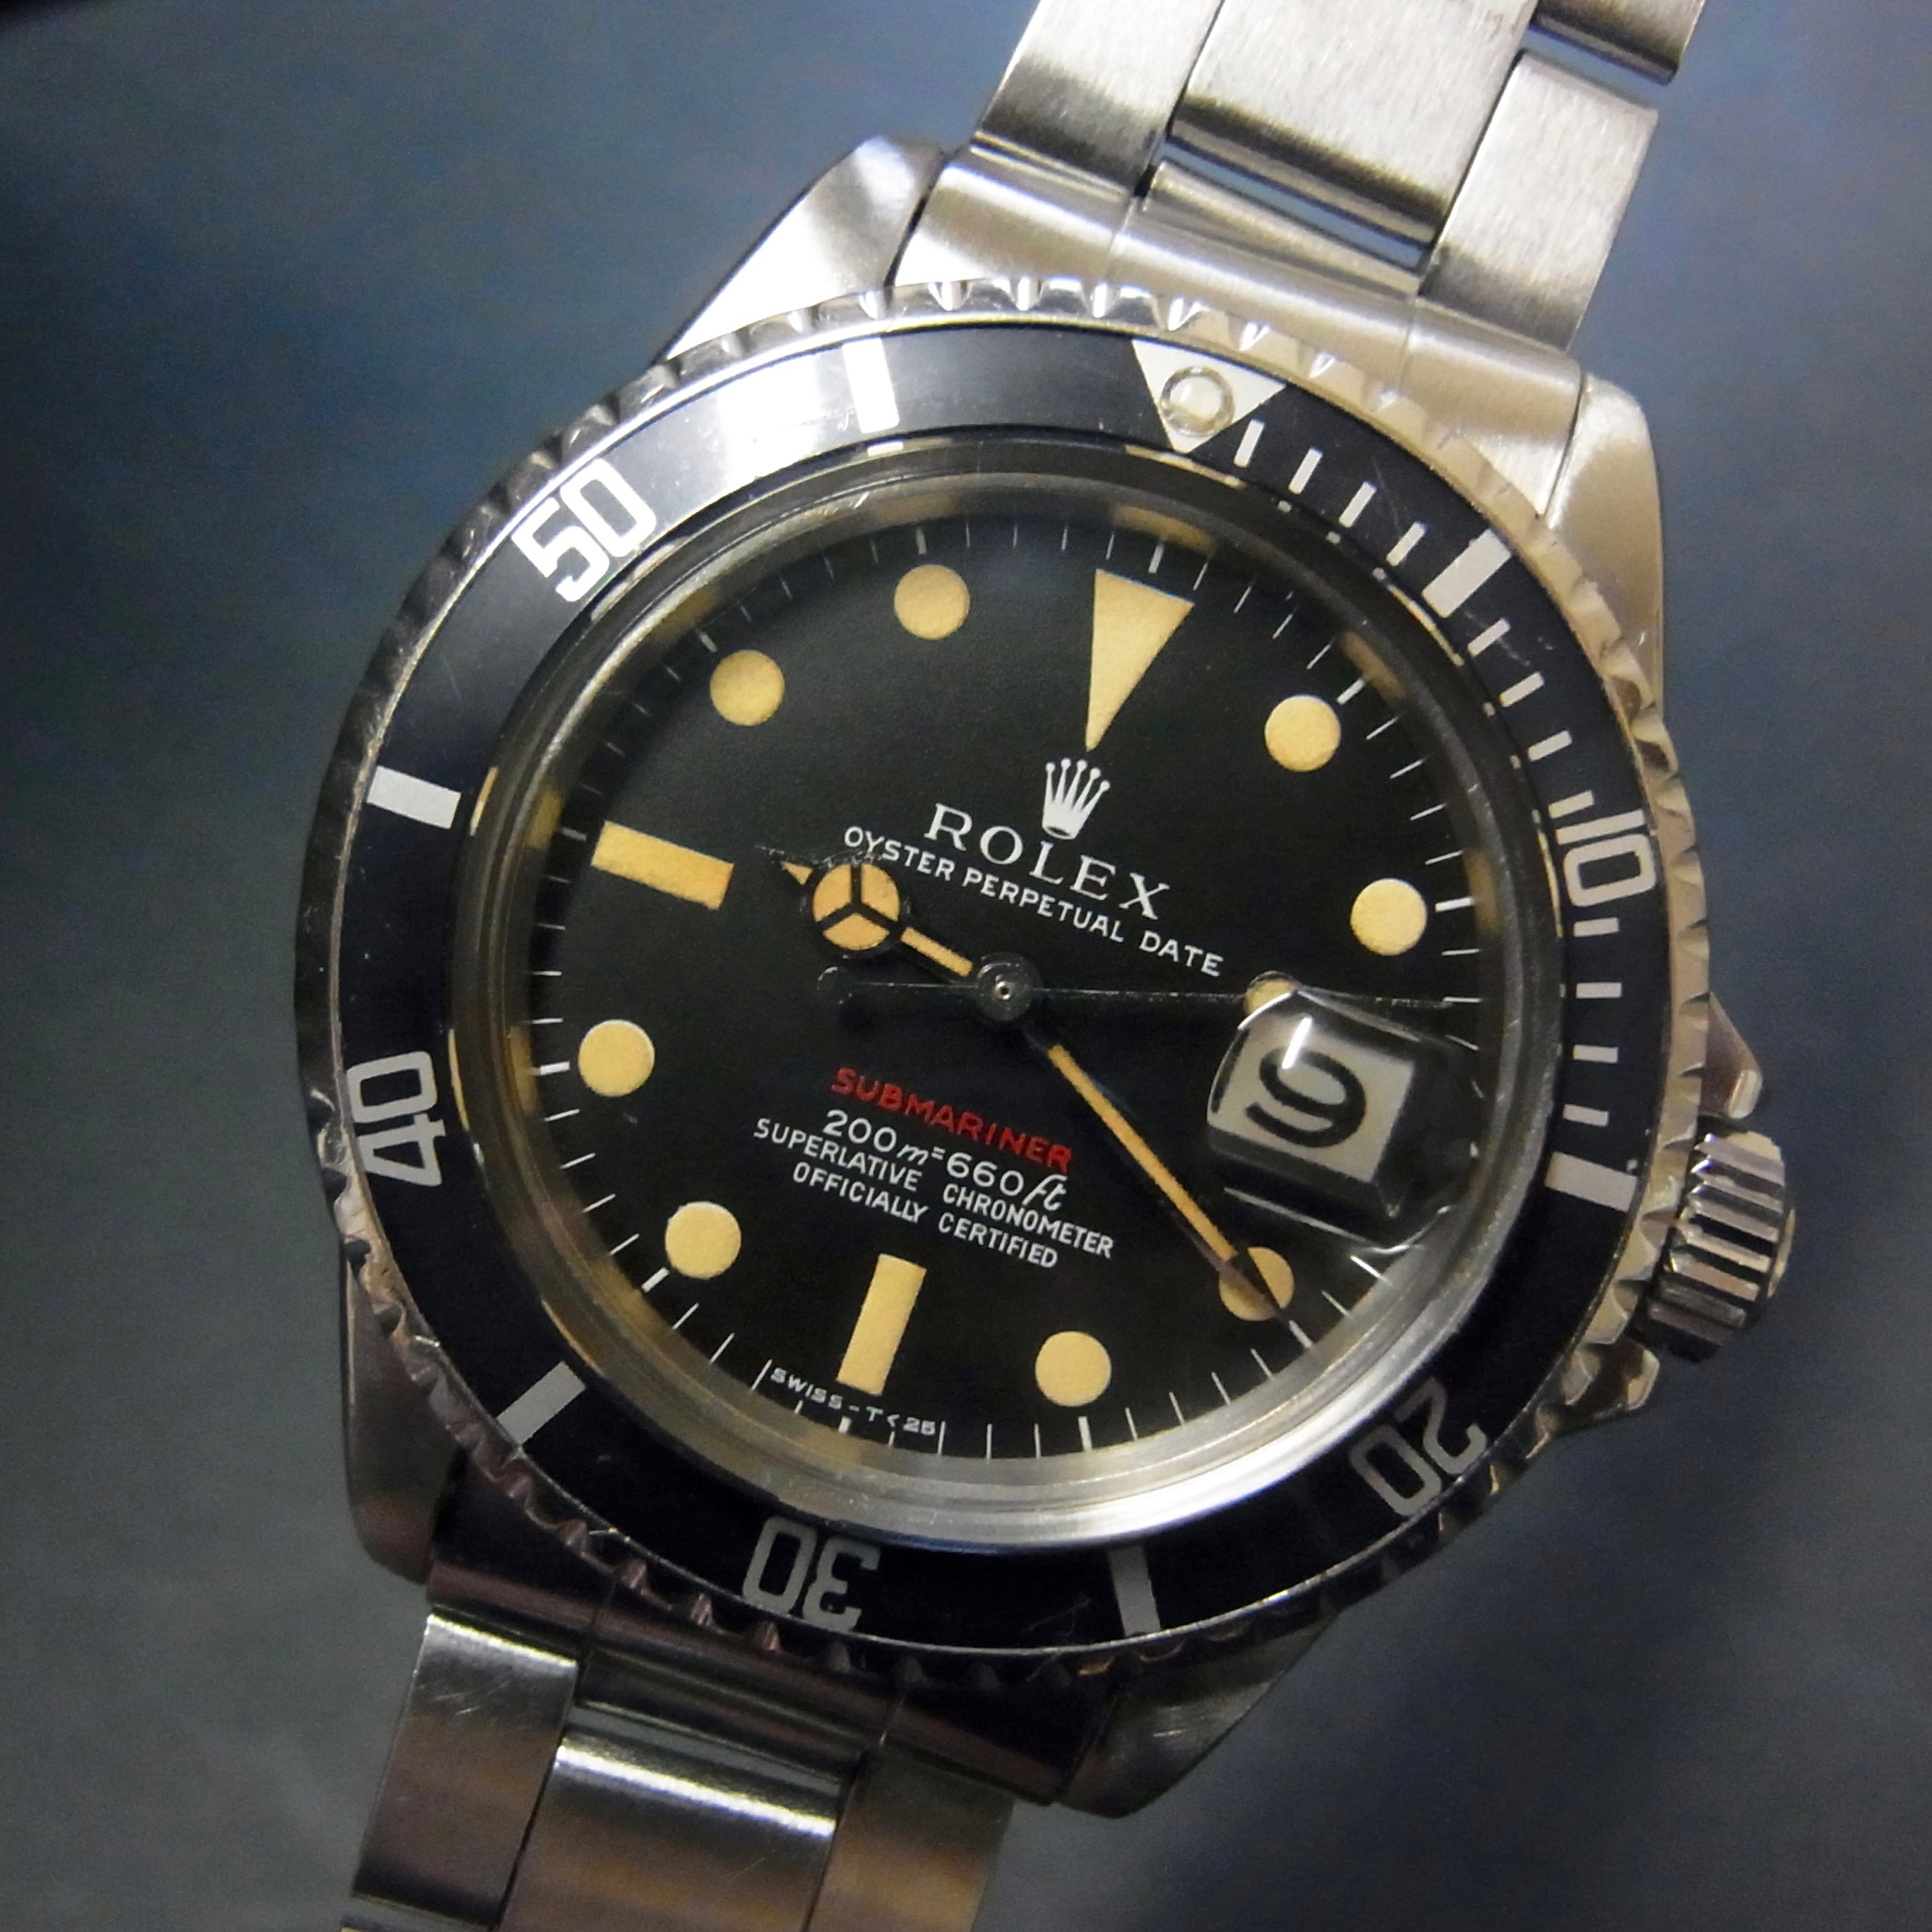 Rolex 1680 MK1 Red Submariner Excellent Patina #status ; Sold#<br>Status : Sold Condition : mint Serial : 218xxxx Year : 1969 Movement : 1570